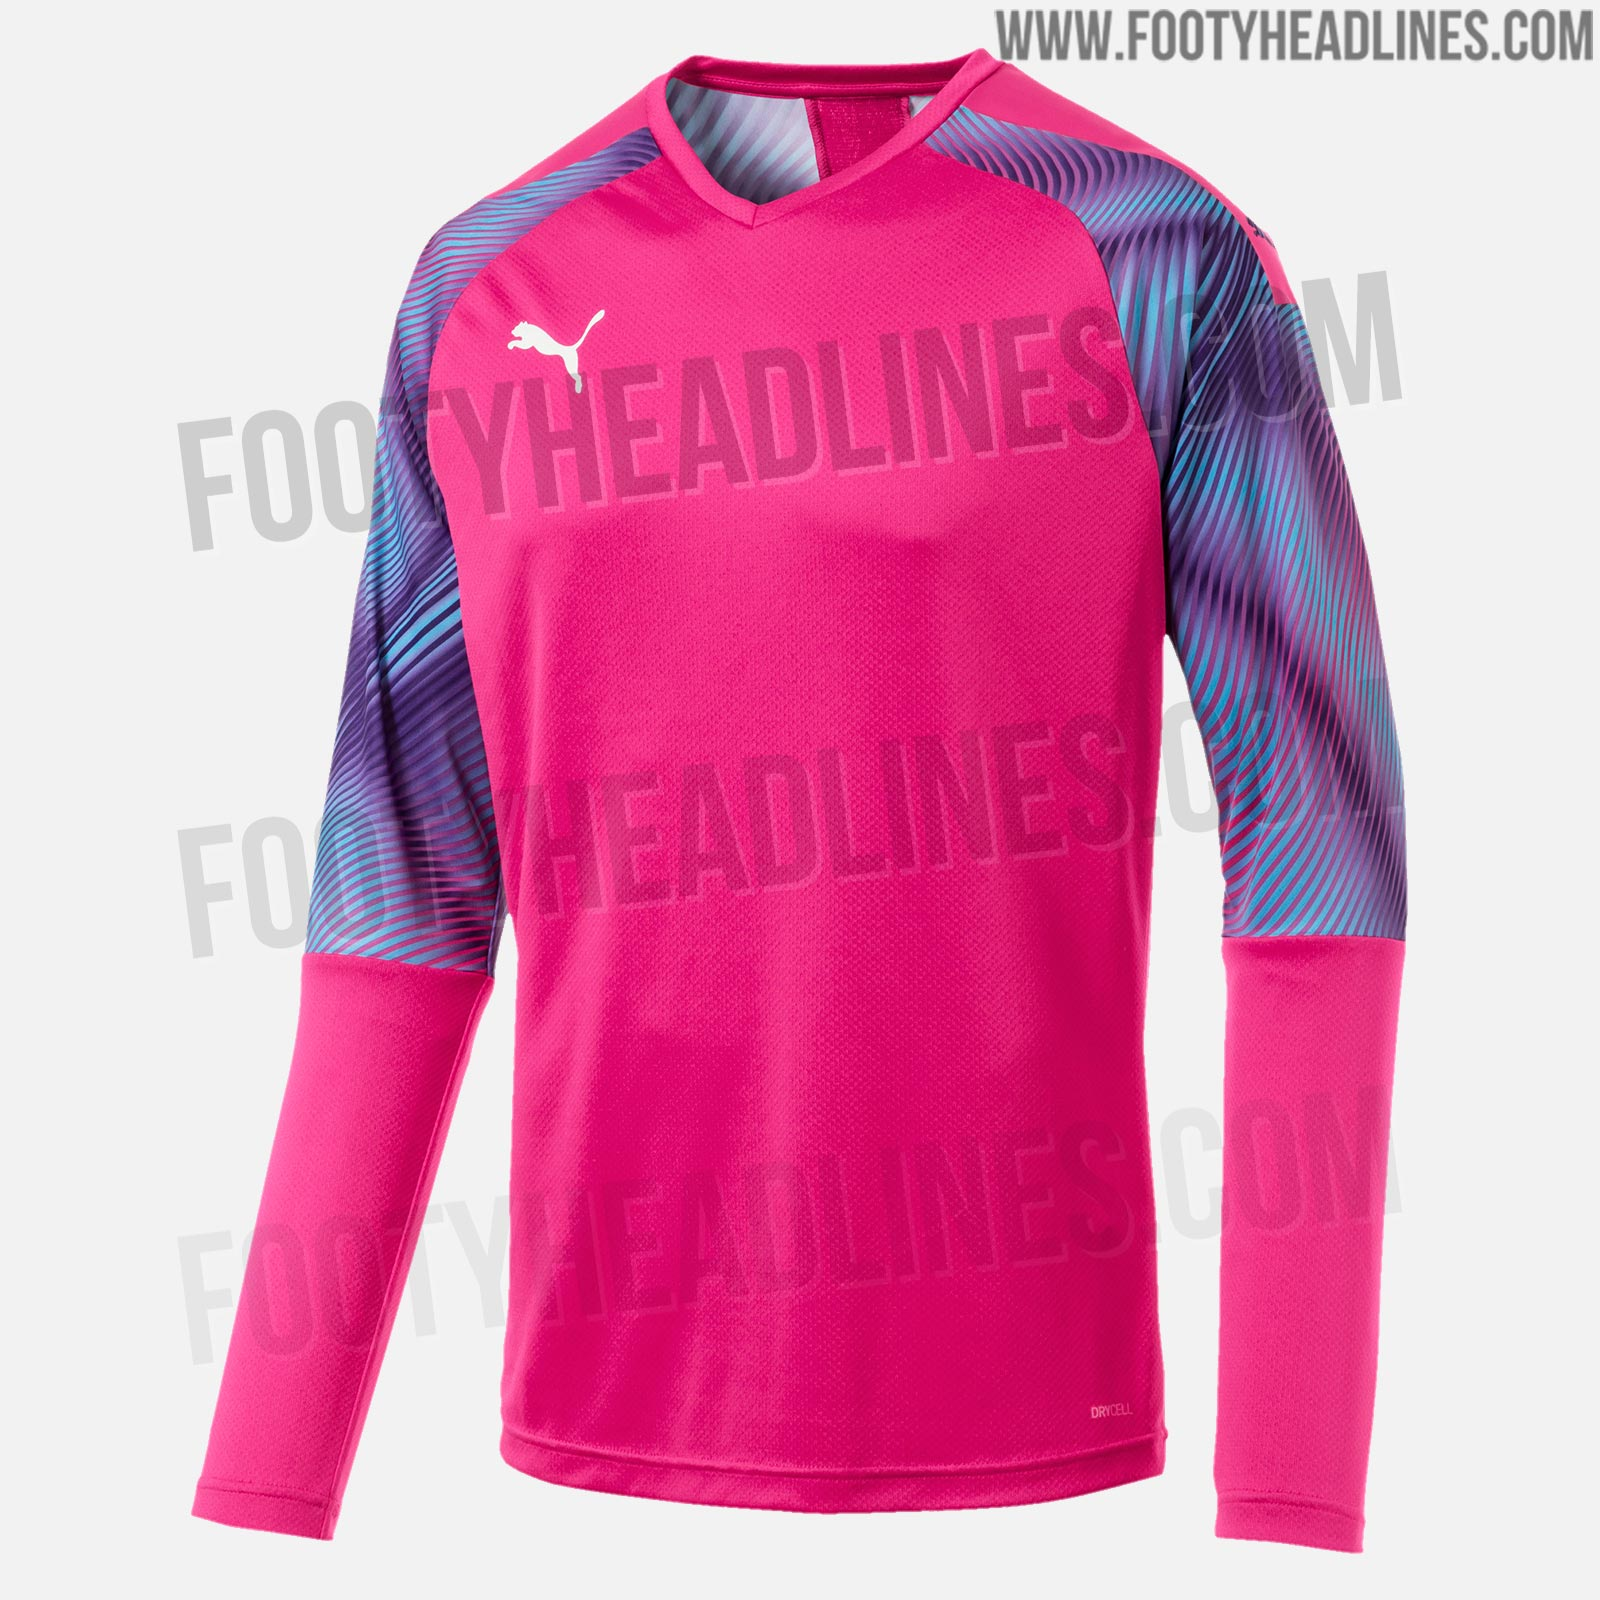 8dedccd3b Nike Inspired  - Outstanding Puma 2019-20 Goalkeeper Kit Leaked ...